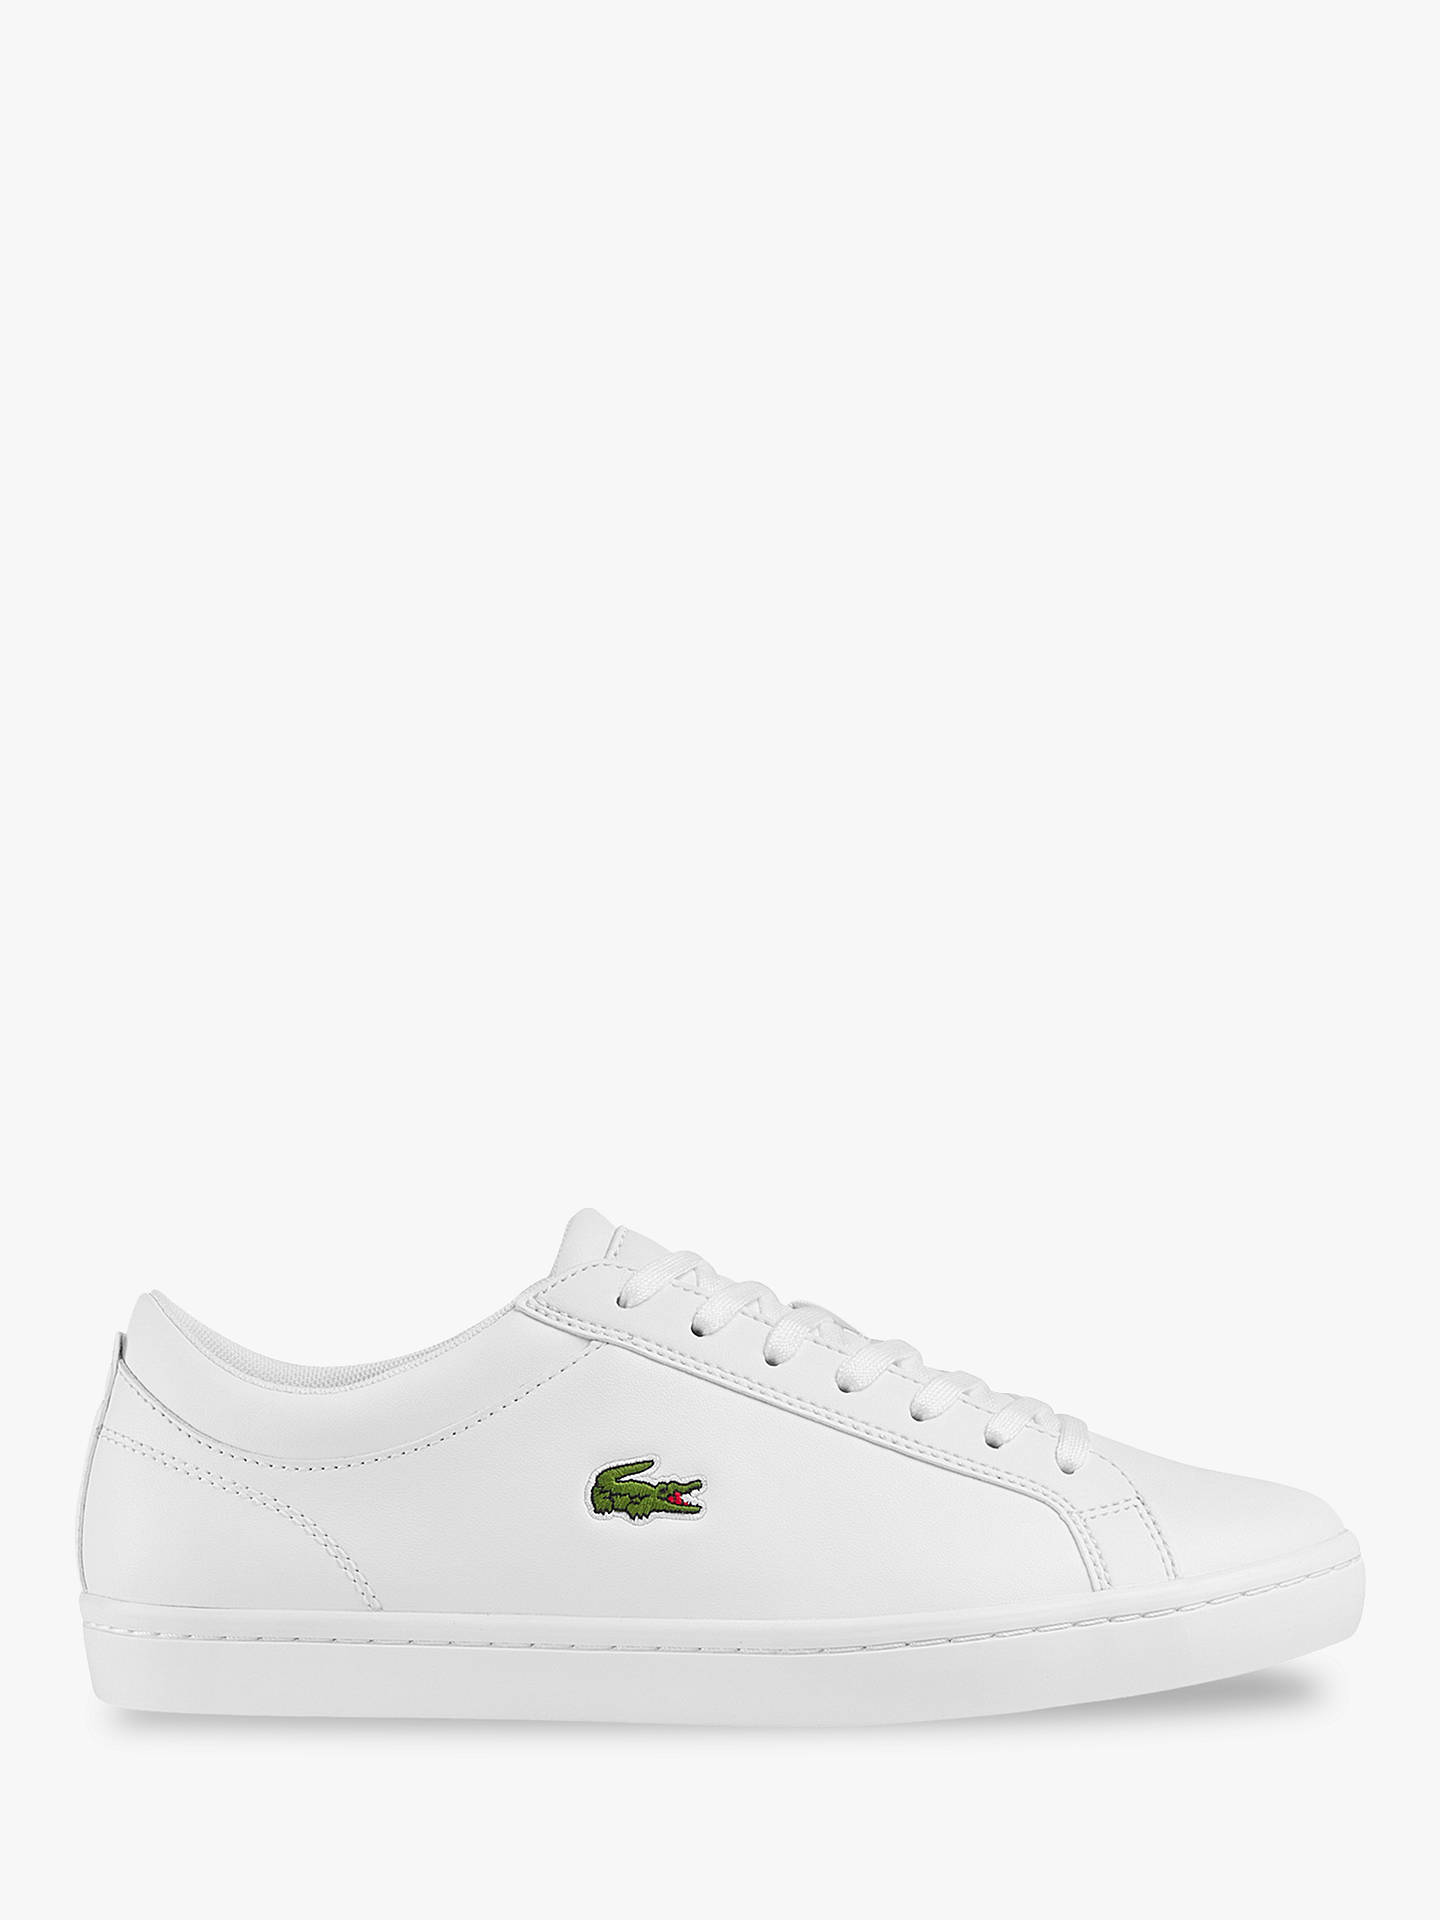 784f6eed03c3 Buy Lacoste Straightset Trainers